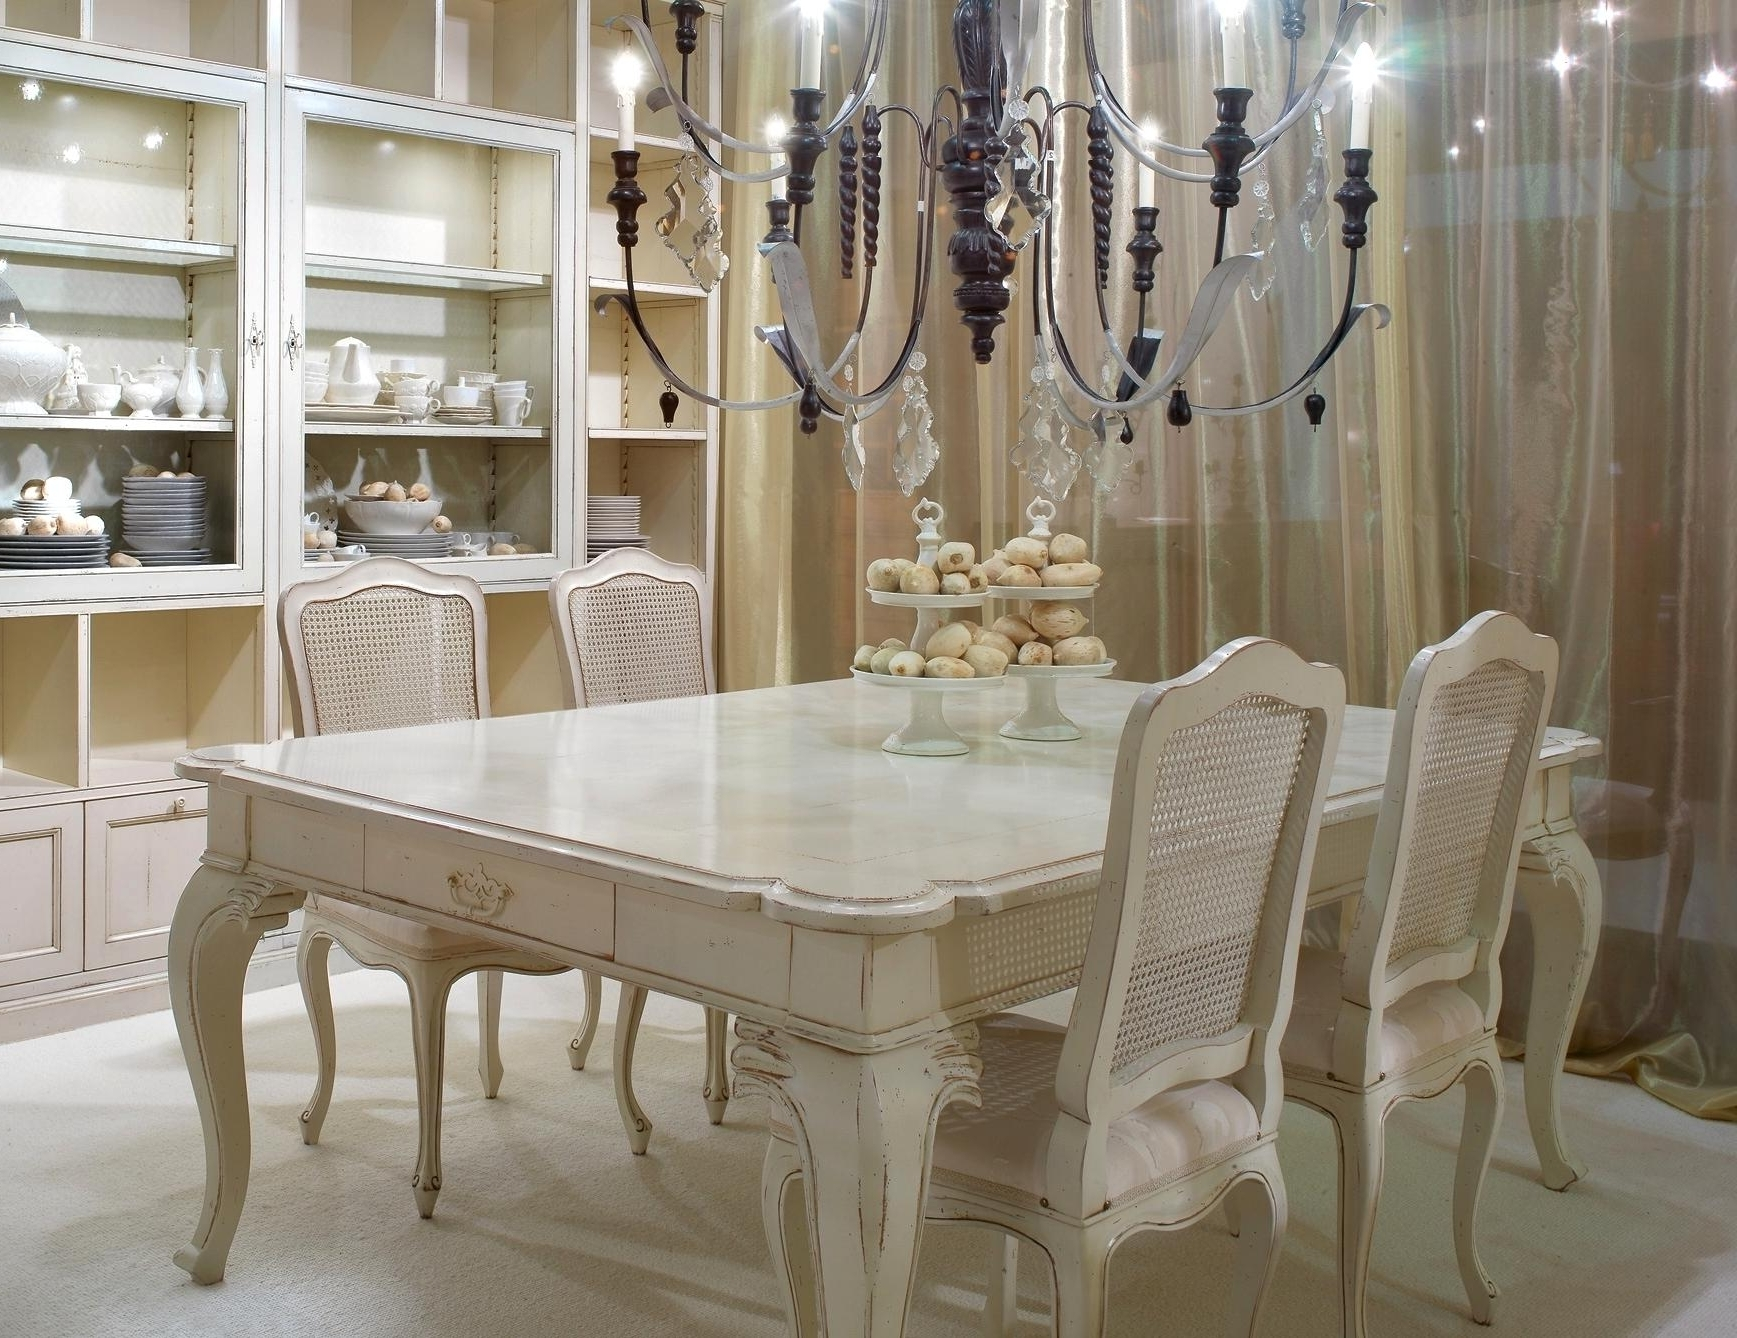 Well Known Retro Glass Dining Tables And Chairs Pertaining To Brilliant Retro Dining Room Furniture Glass Dining Chairs For Sale (View 25 of 25)